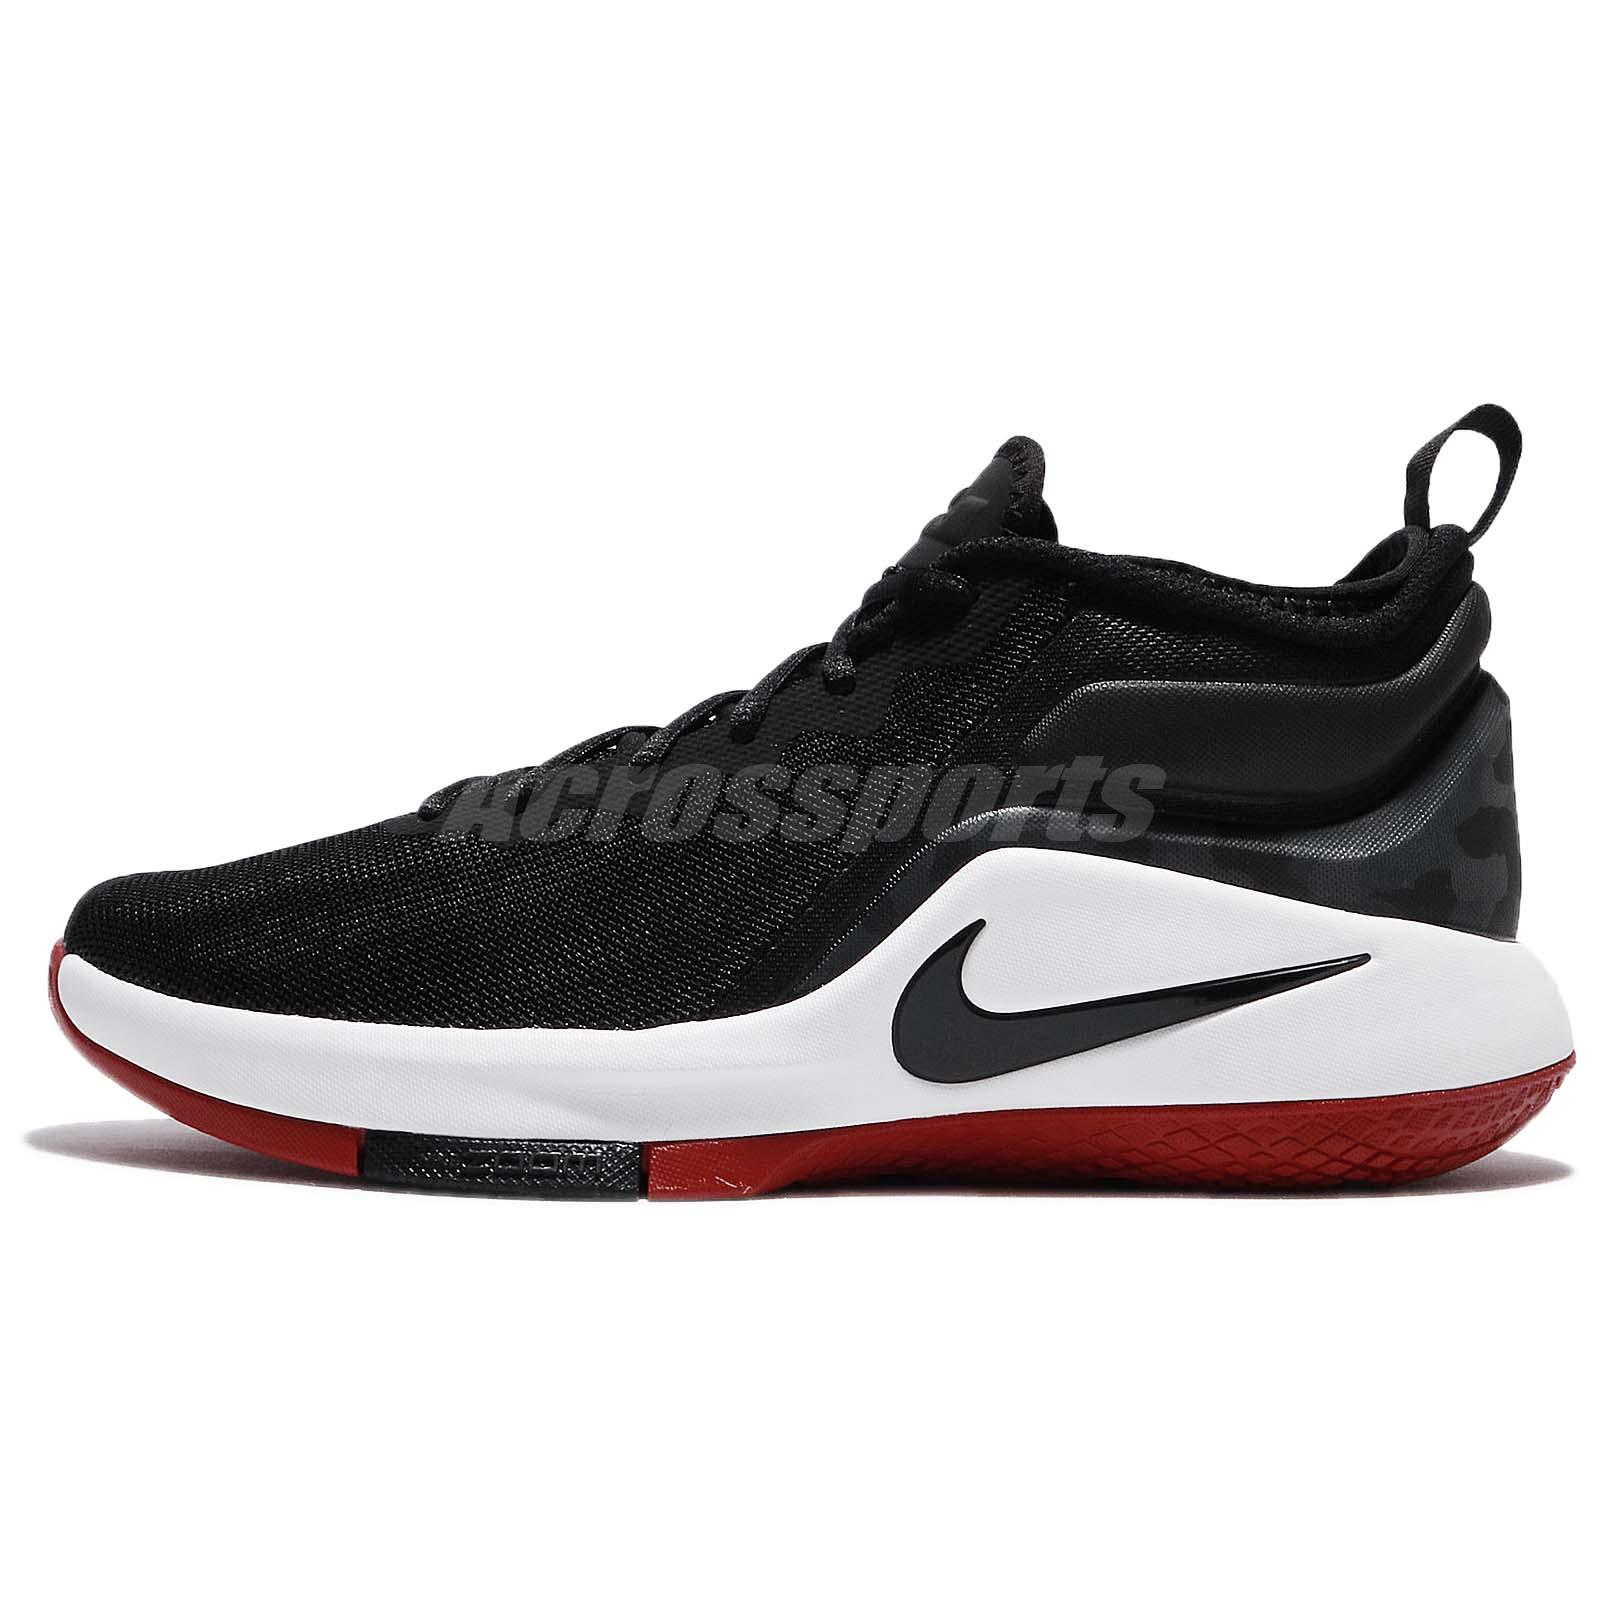 5da0f182f956 ... reduced nike lebron witness ii ep 2 james bred black red men basketball  shoe aa3820 006